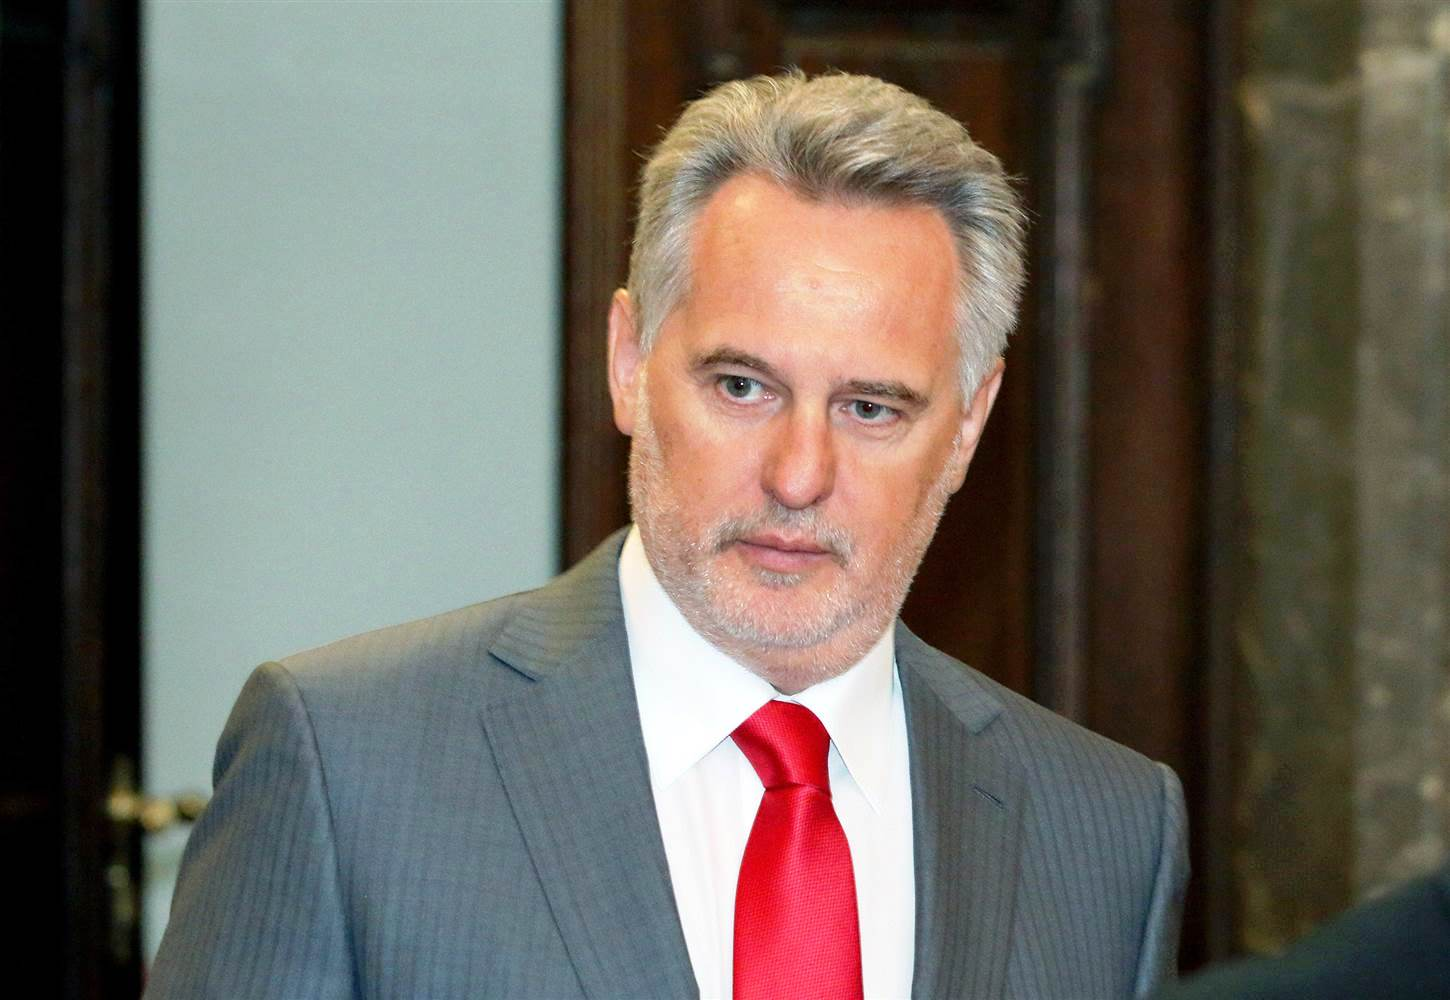 Austrian High Court Rejects Ukrainian Firtash's Extradition Appeal